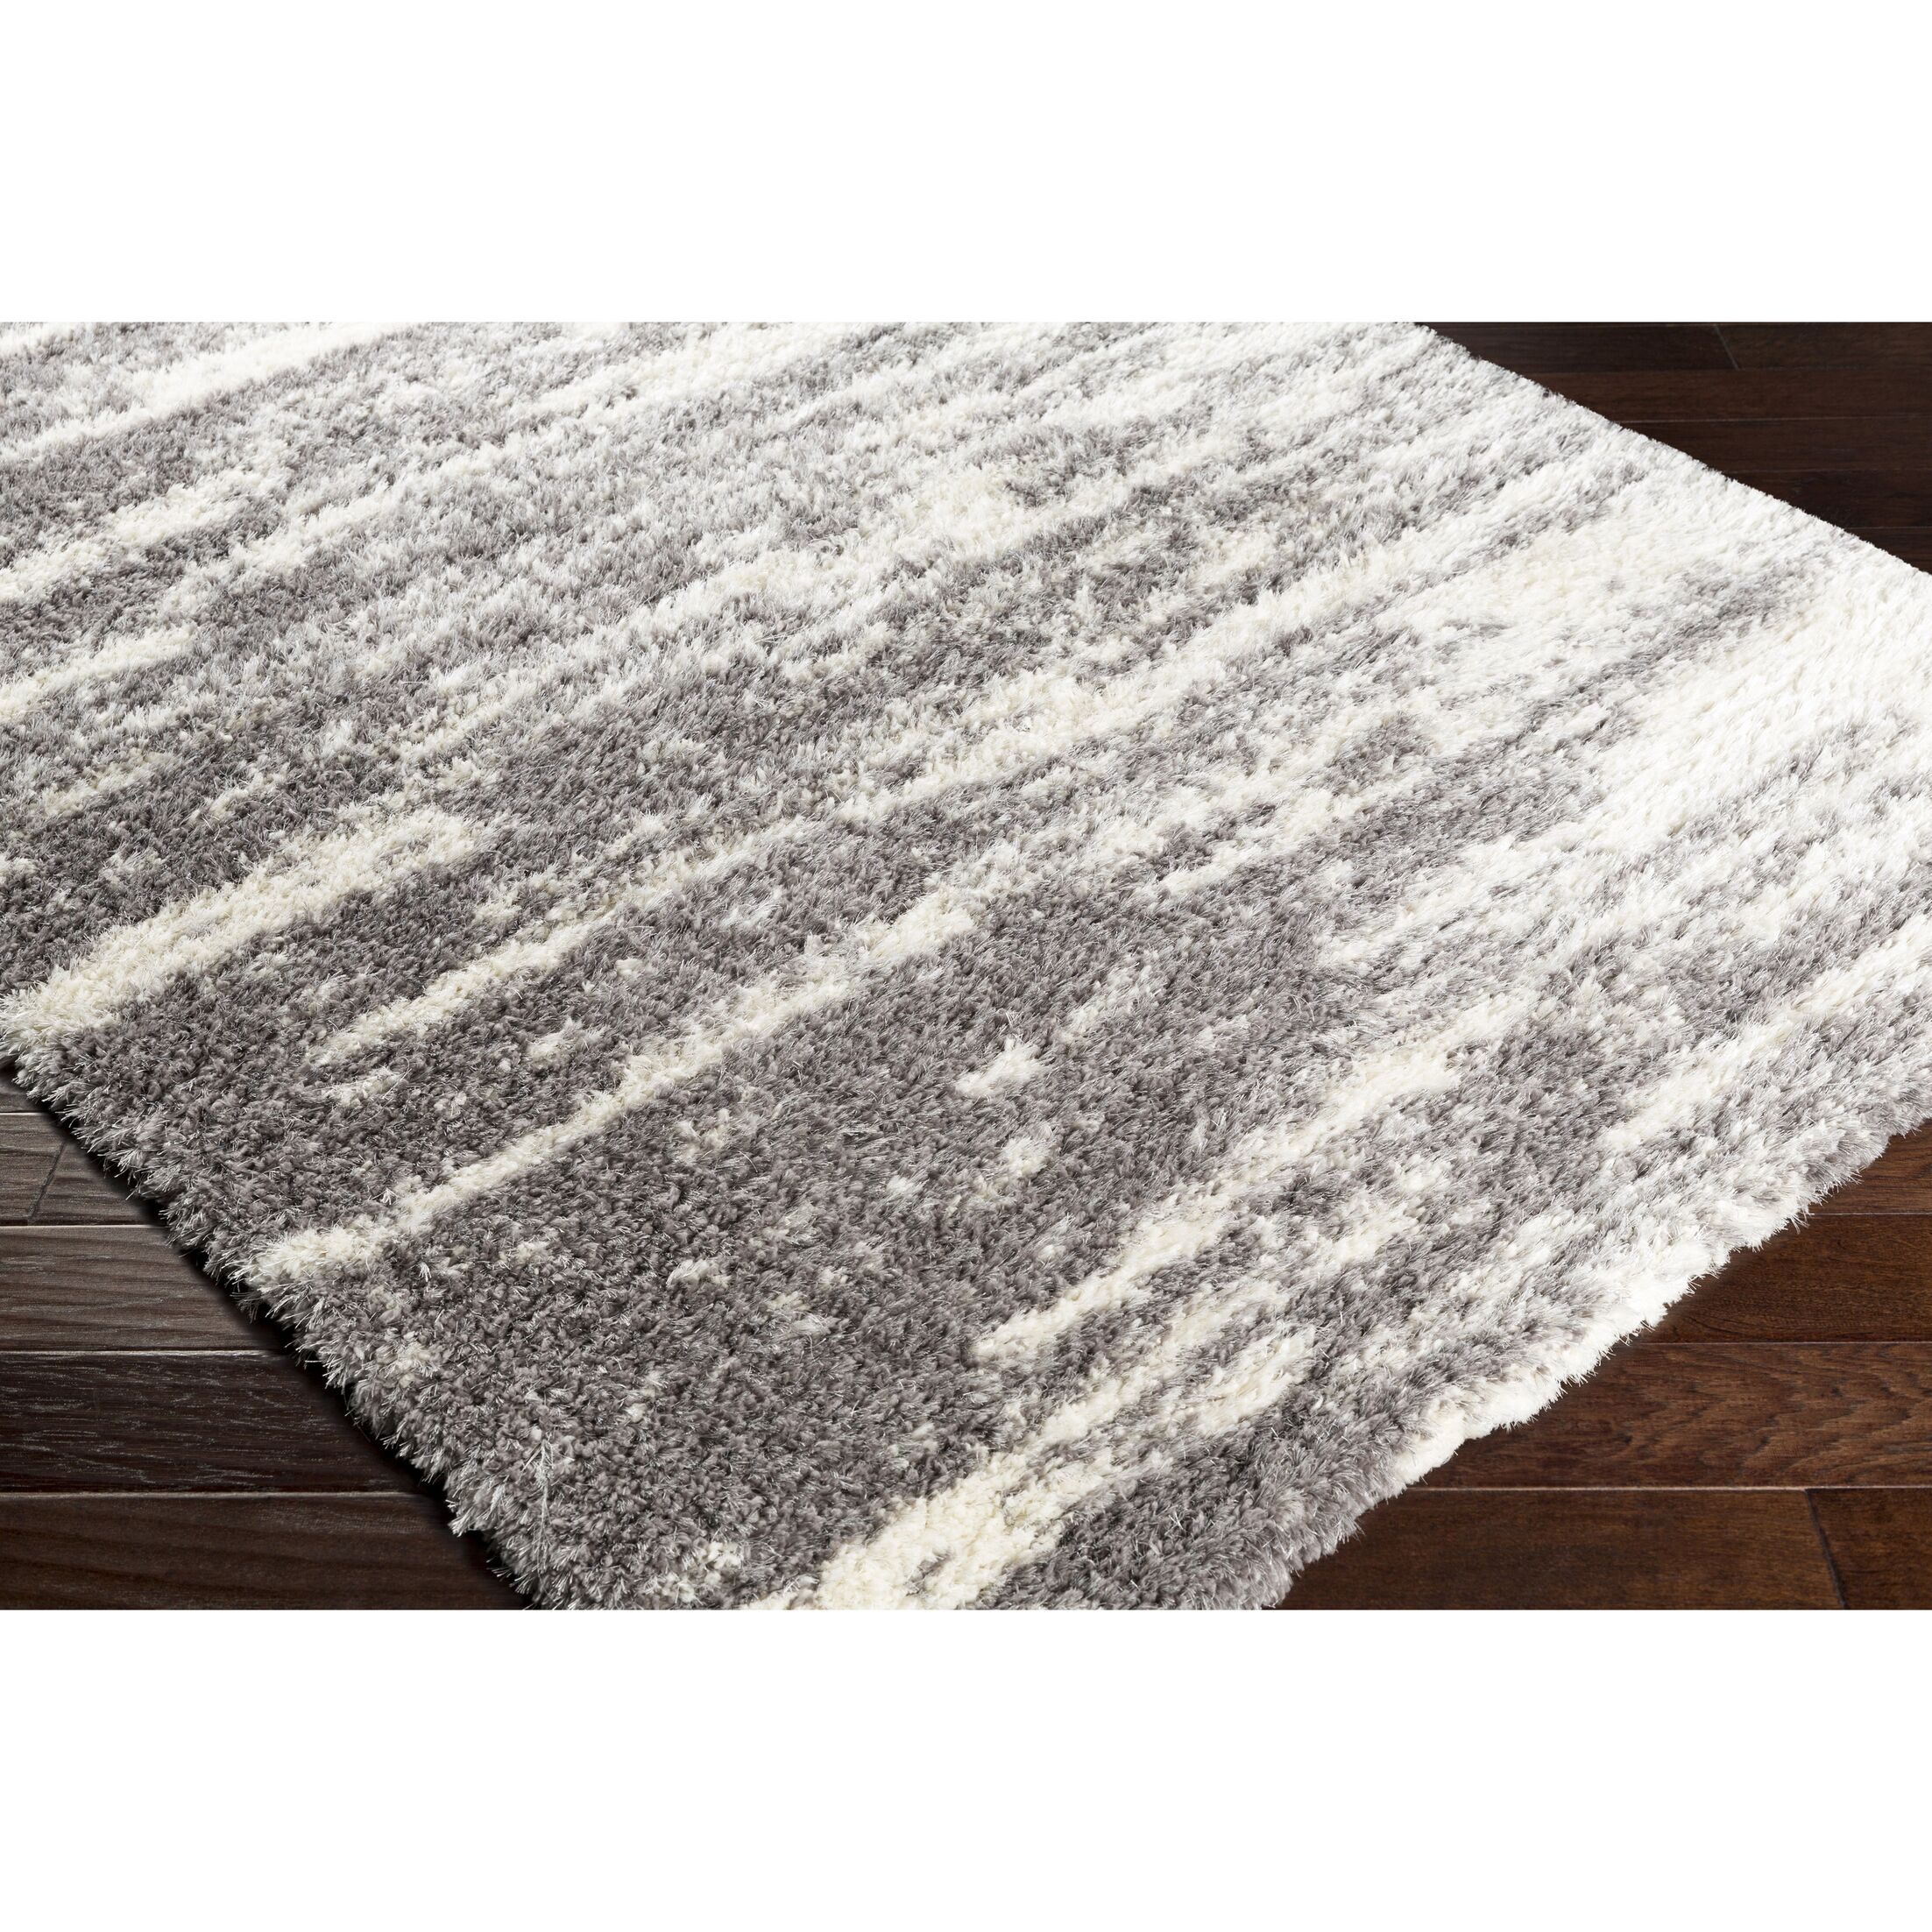 Grantham Gray/Neutral Area Rug Rug Size: Rectangle 7'10